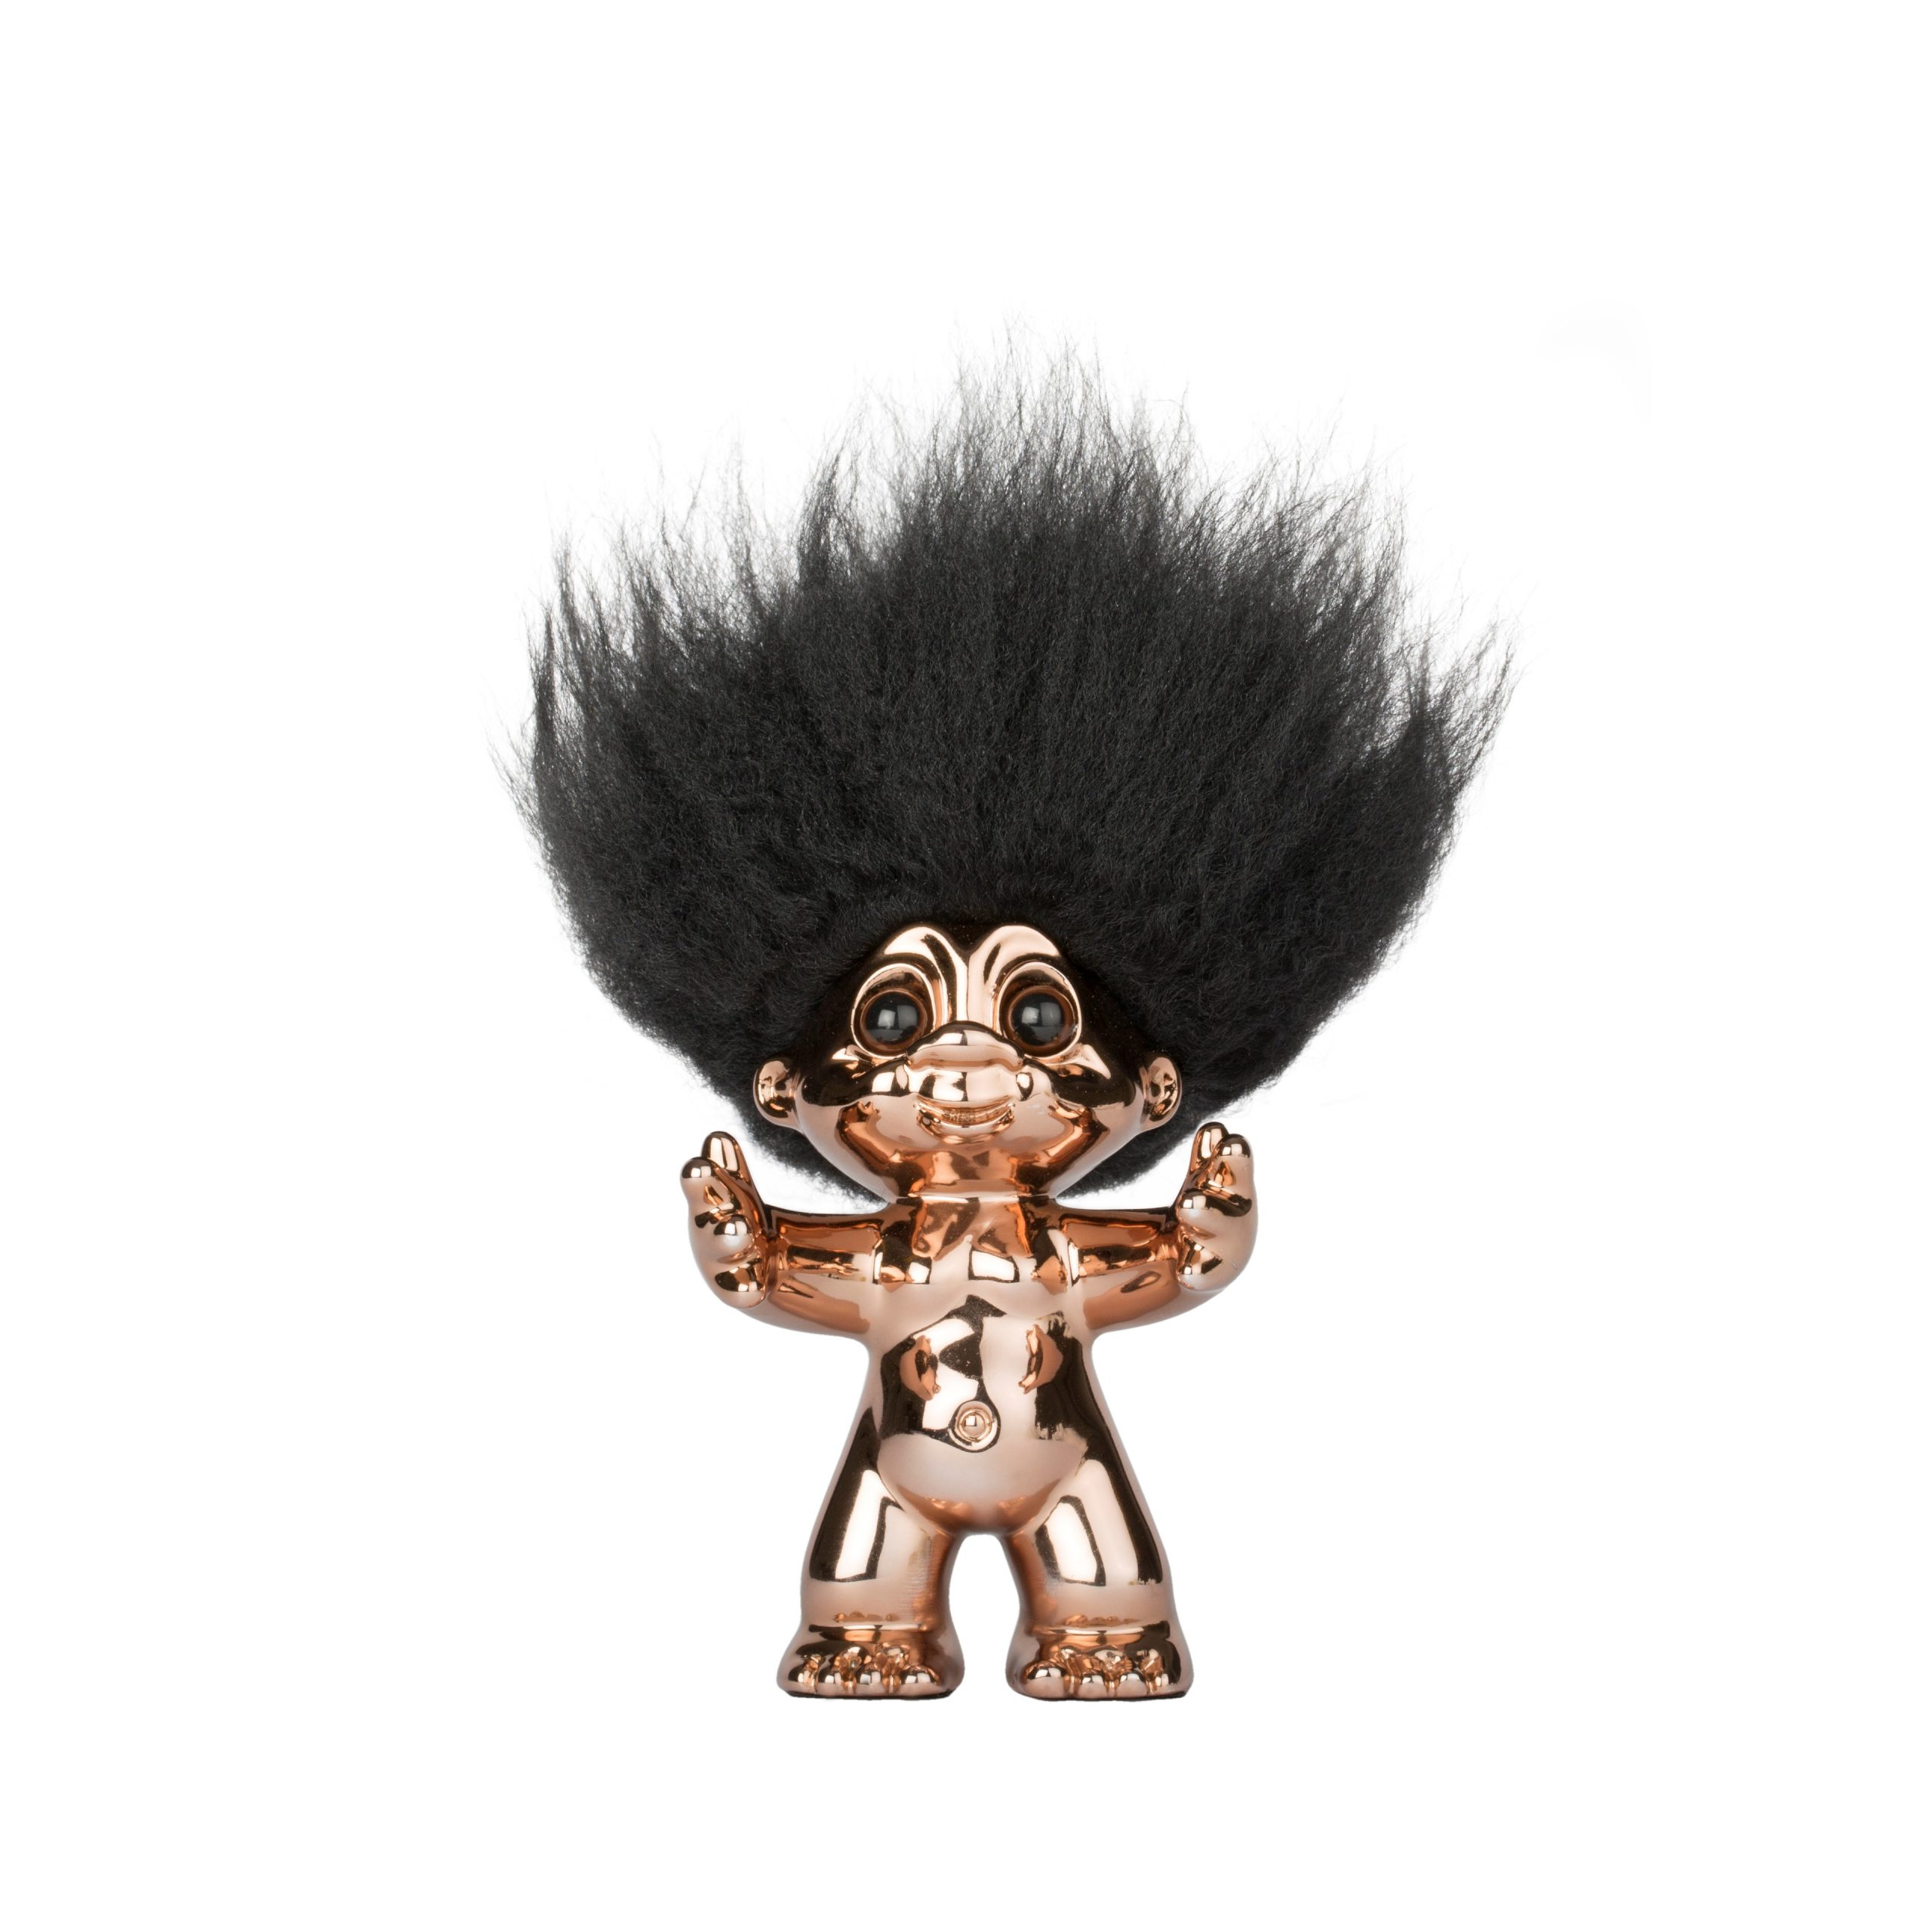 Goodluck Troll – Bronze Color With Black Hair